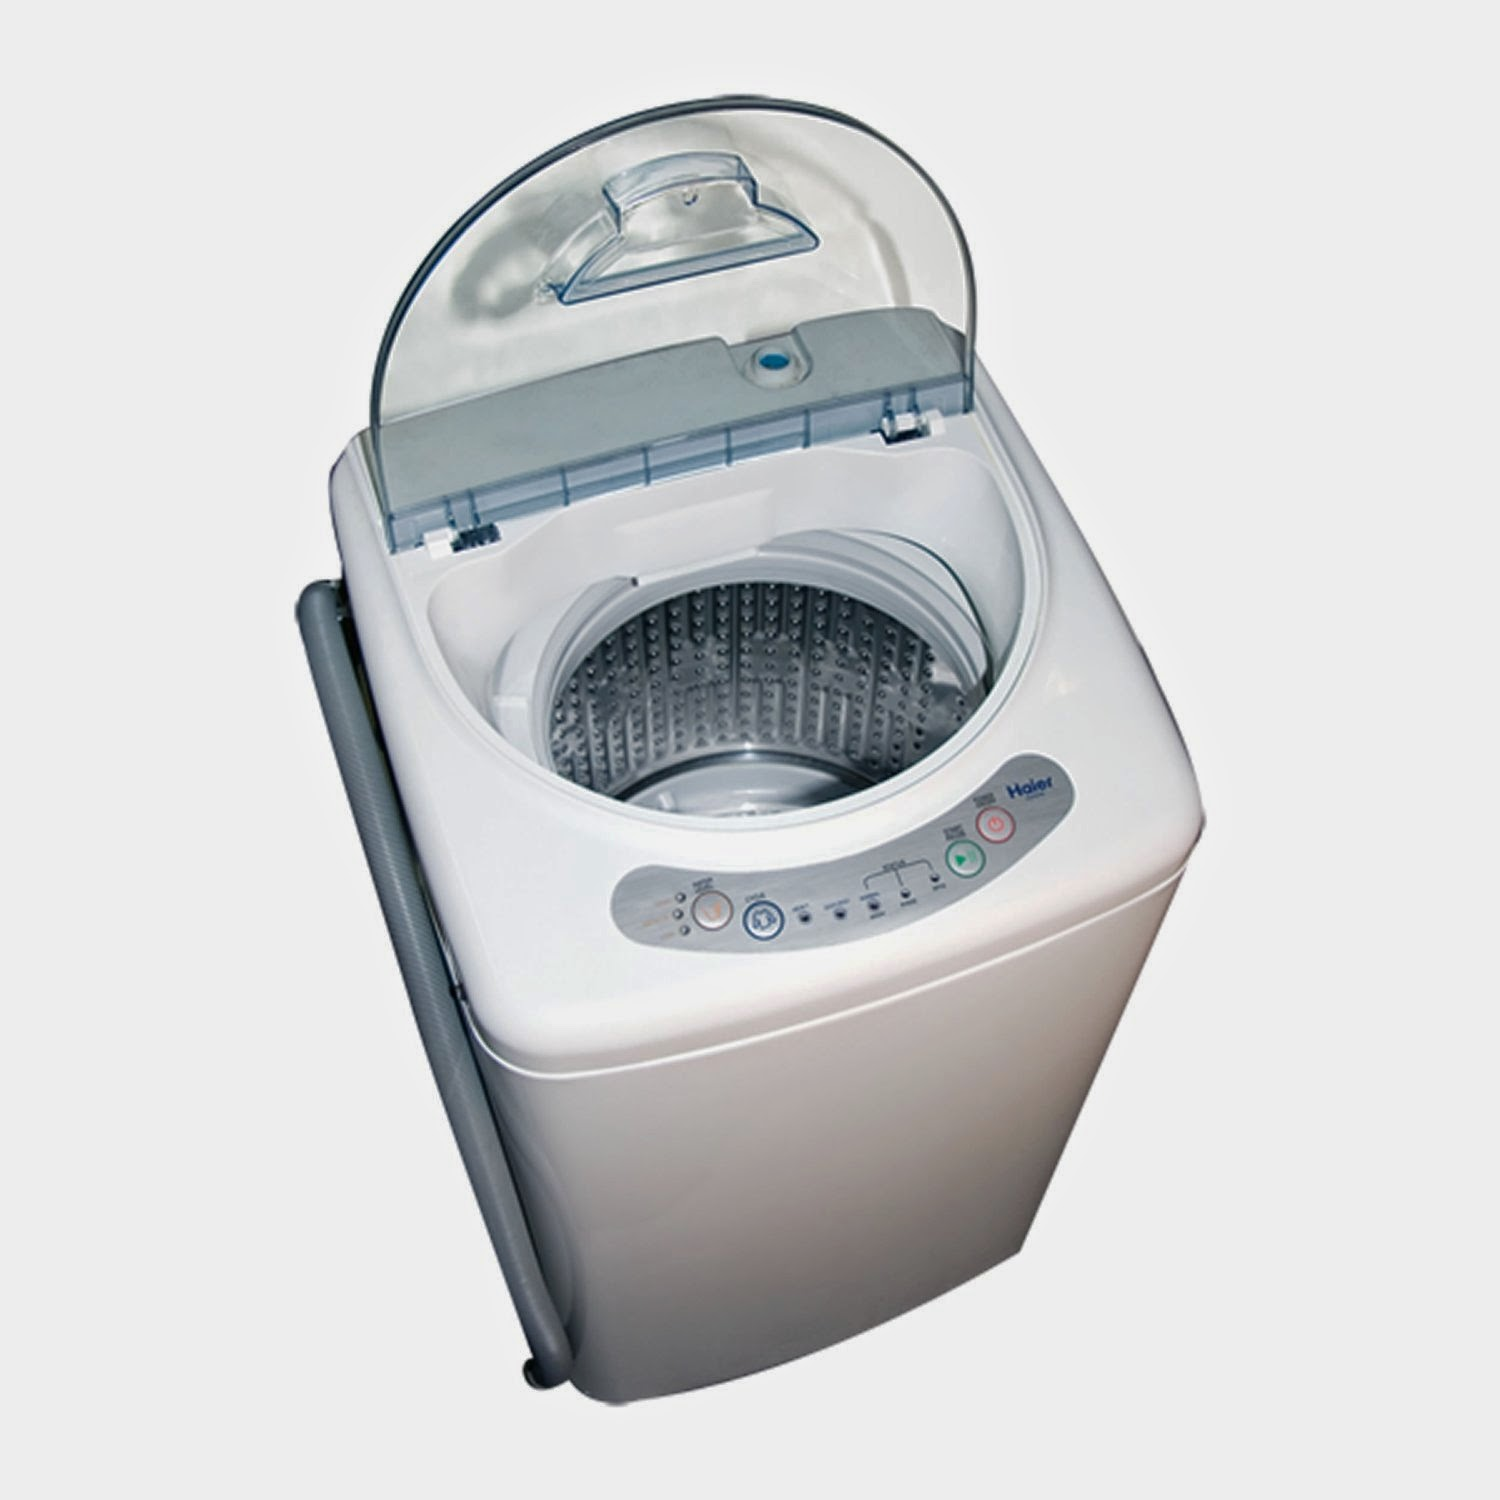 Washer And Dryers Combo washer dryer combo reviews: rv washer dryer combo reviews